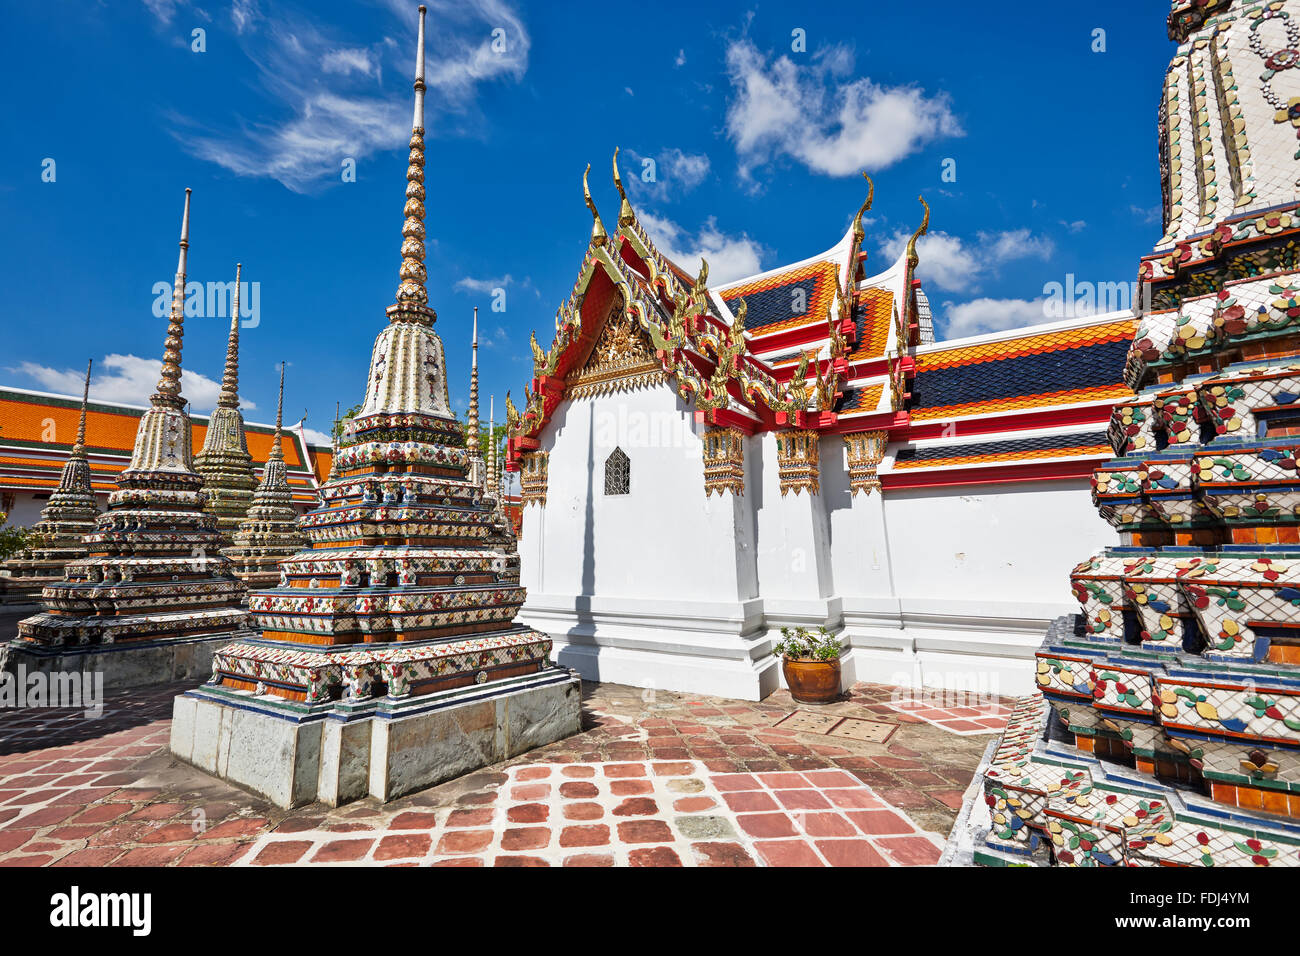 Pagodas of the Wat Pho Temple, Bangkok, Thailand. - Stock Image